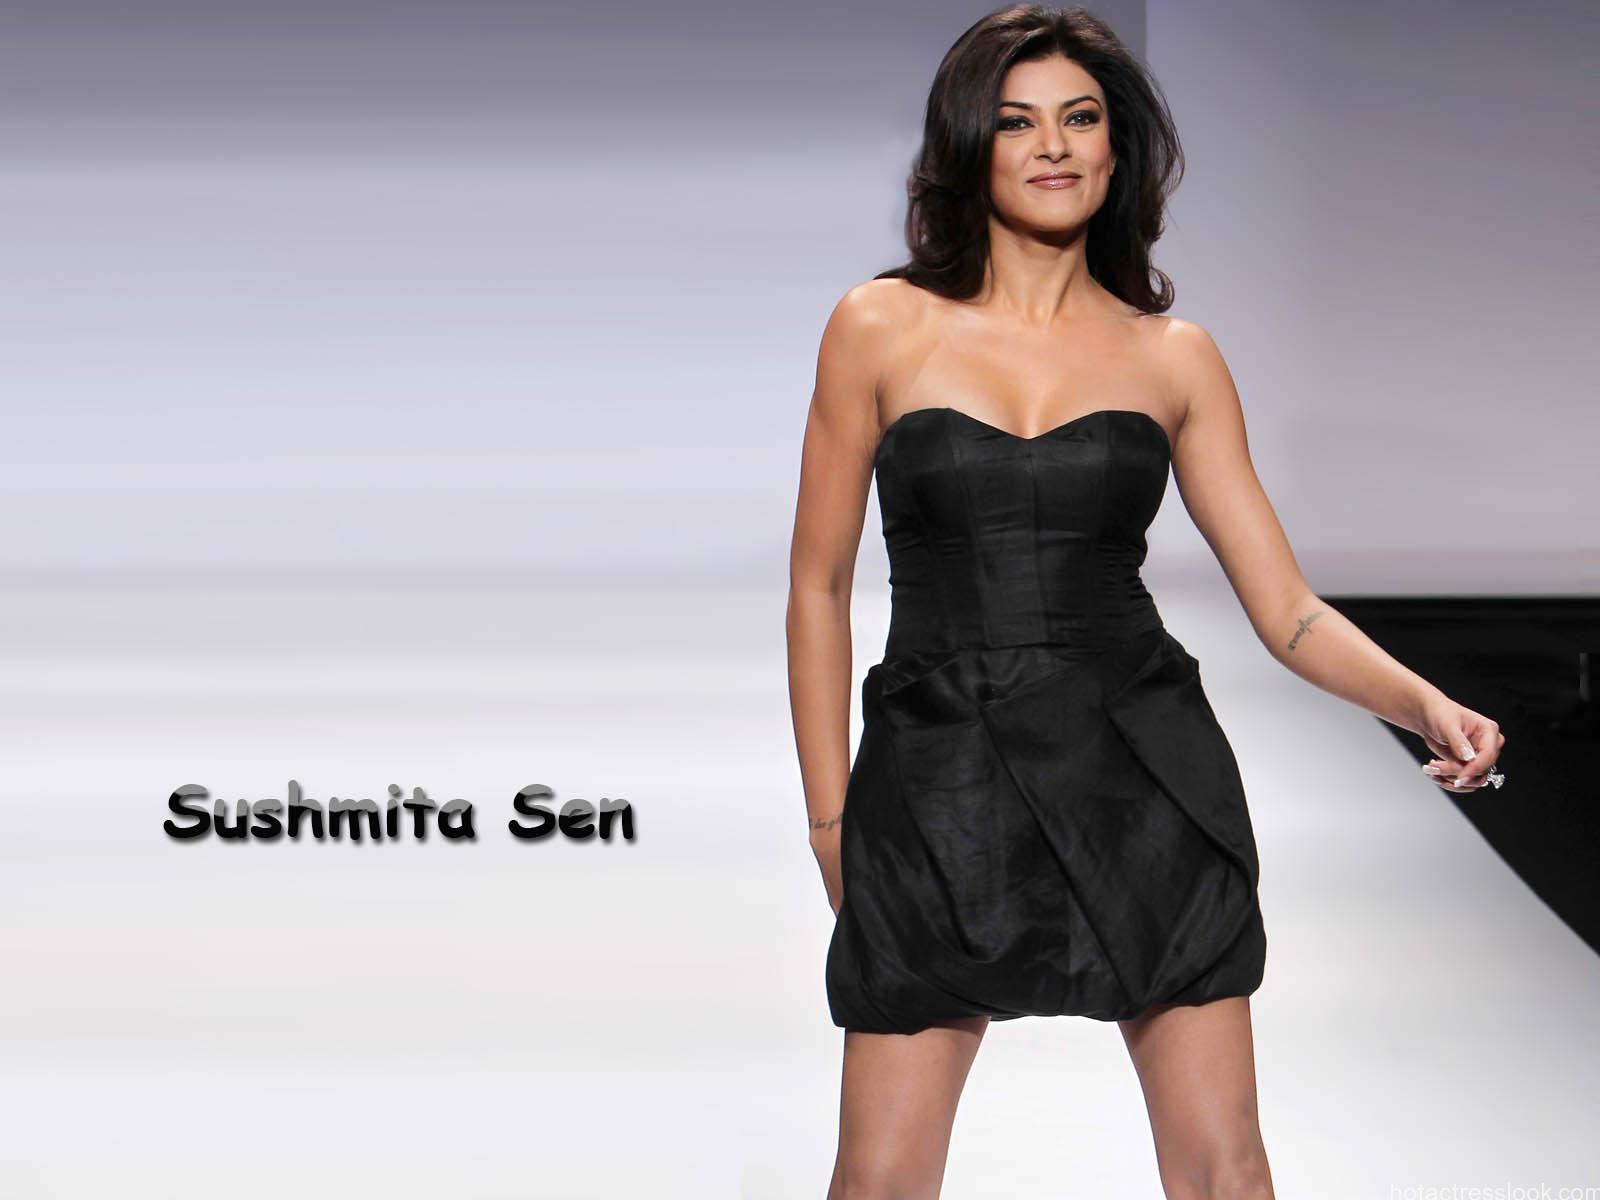 Hot and Sexy sushmita sen